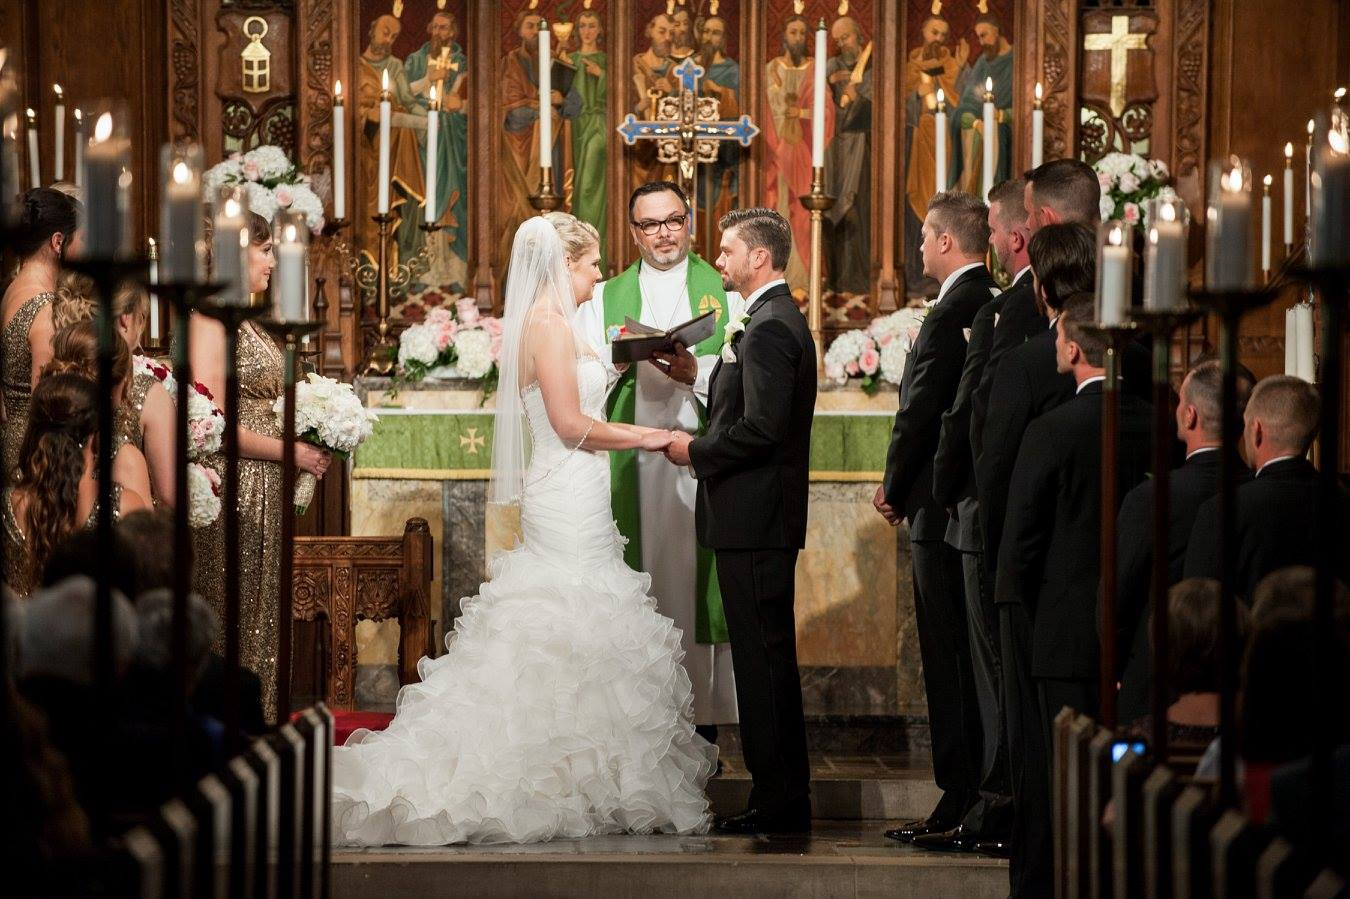 As bride and groom, you have particular reason for thanksgiving. It was God  who brought you together and who will unite you as husband and wife.